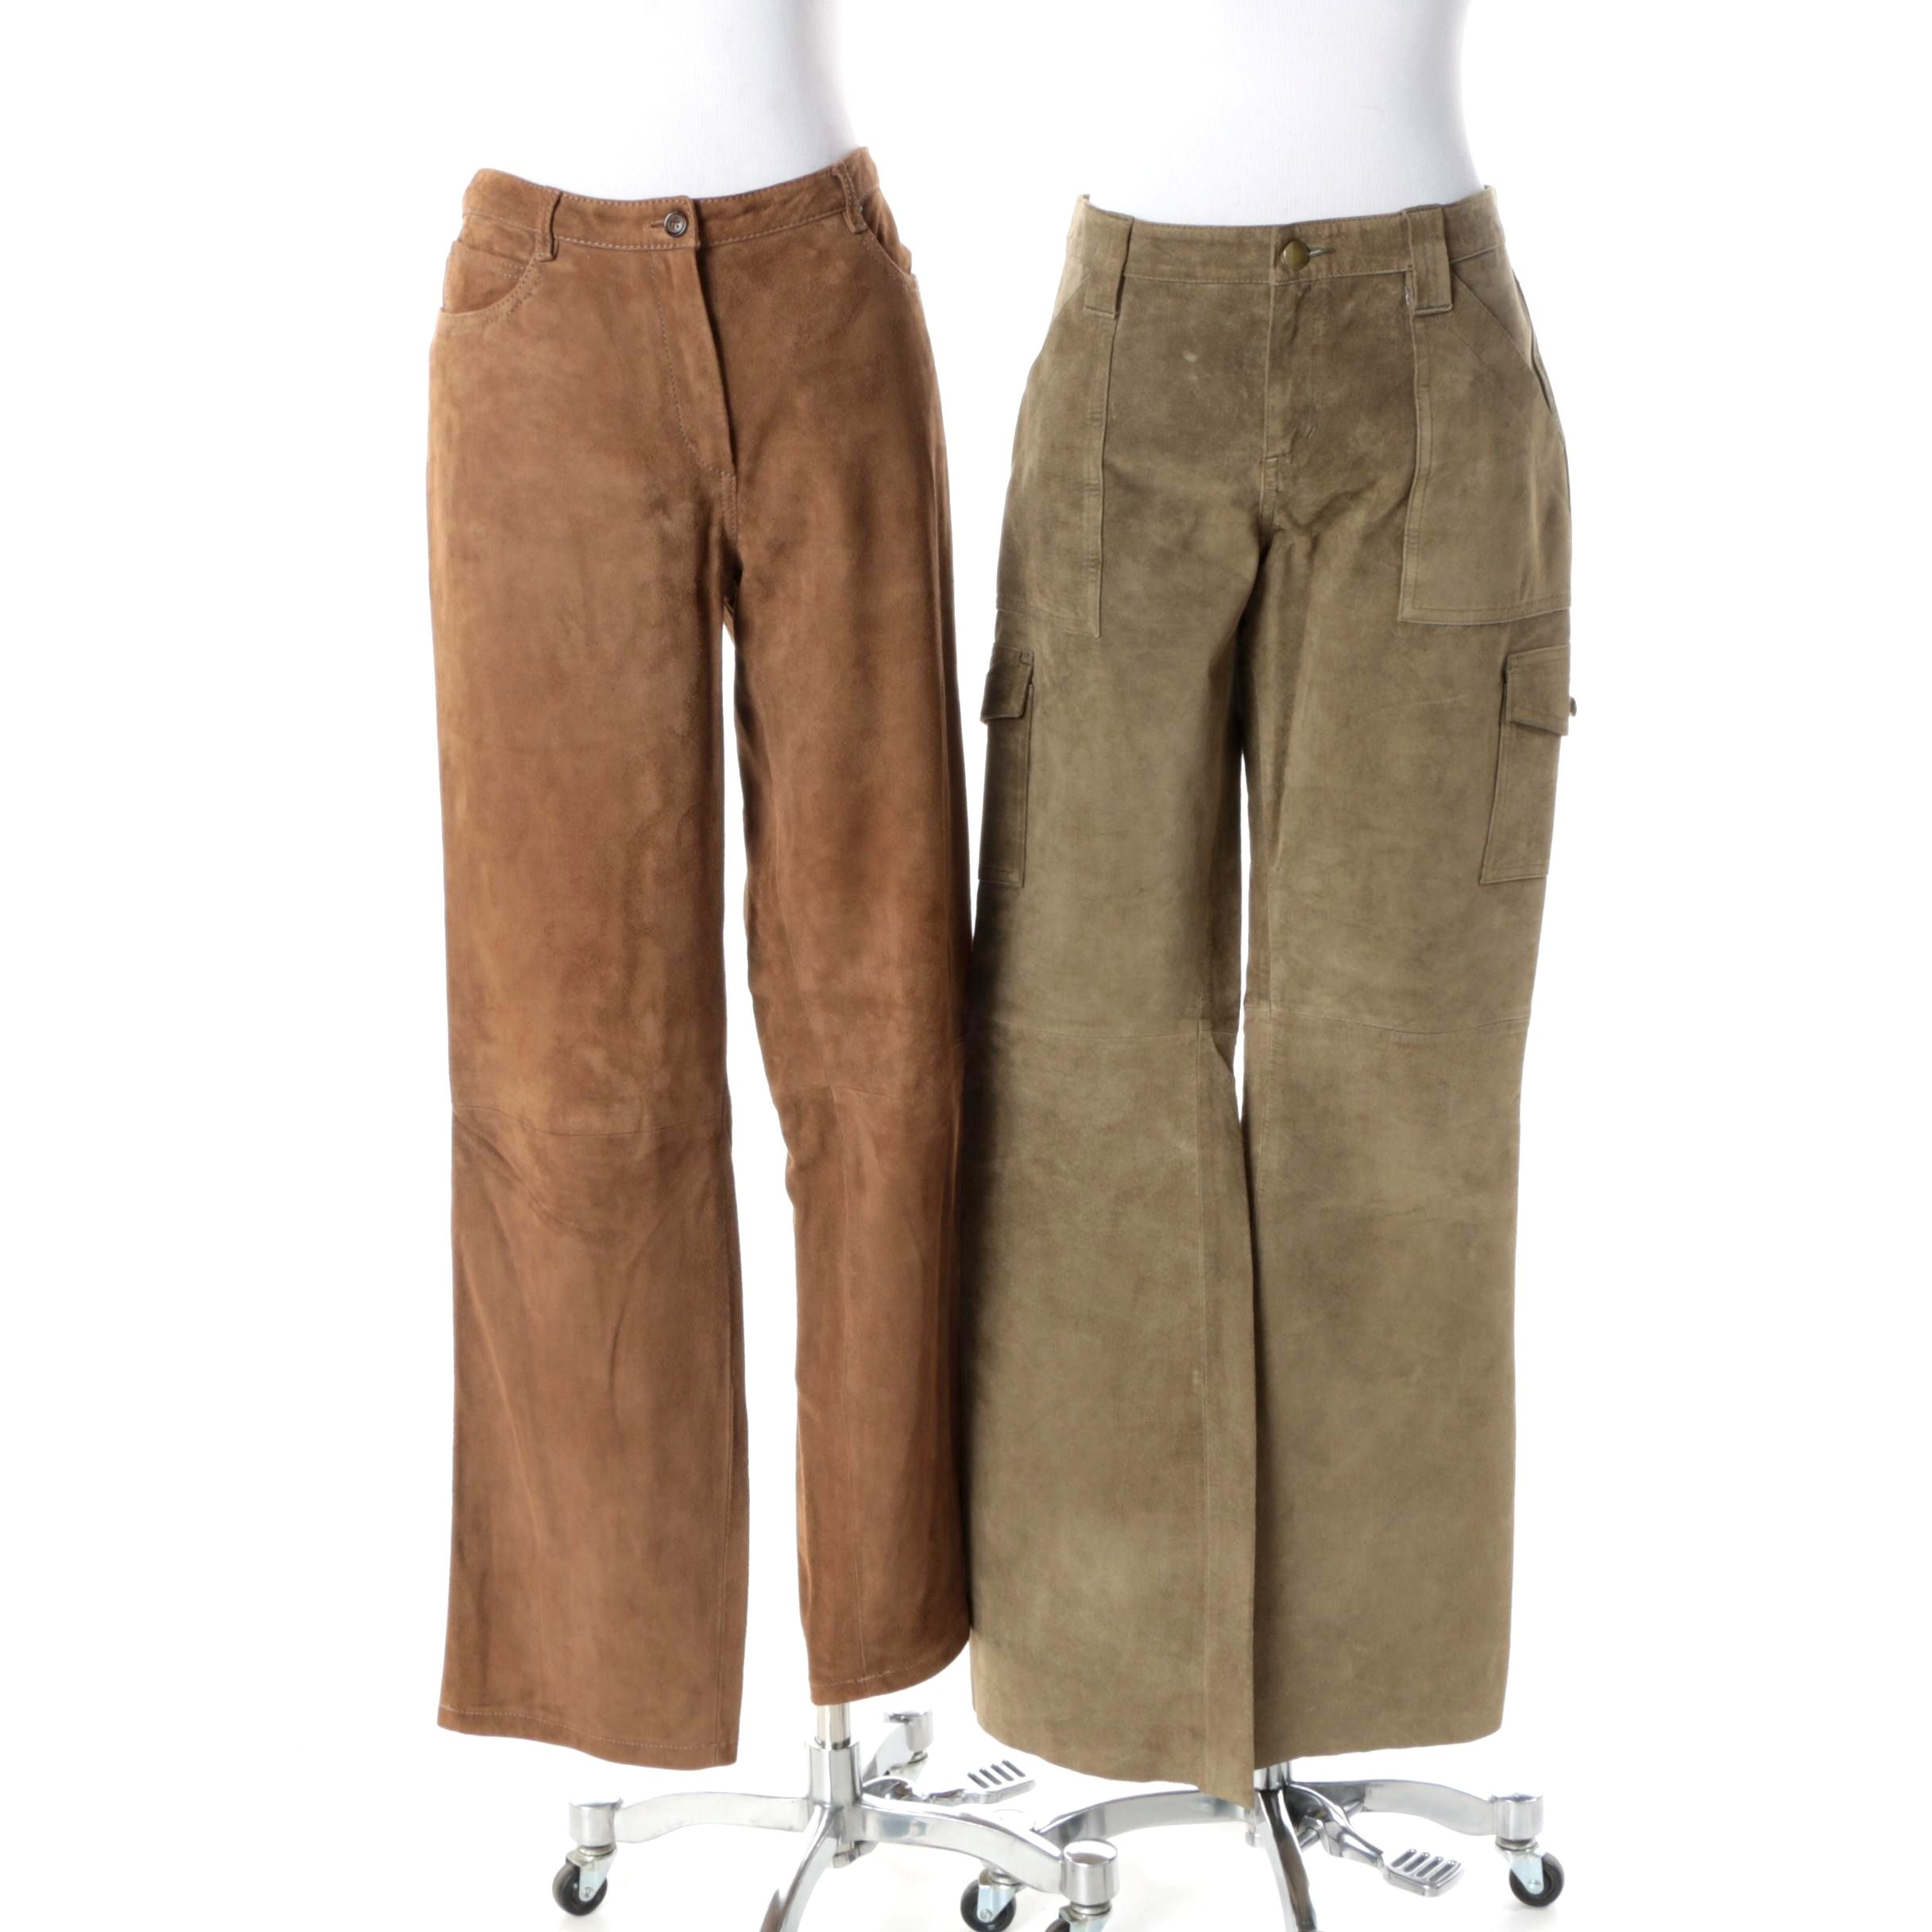 Women's Piazza Sempione and Ezza Michael Hoban Suede Trousers